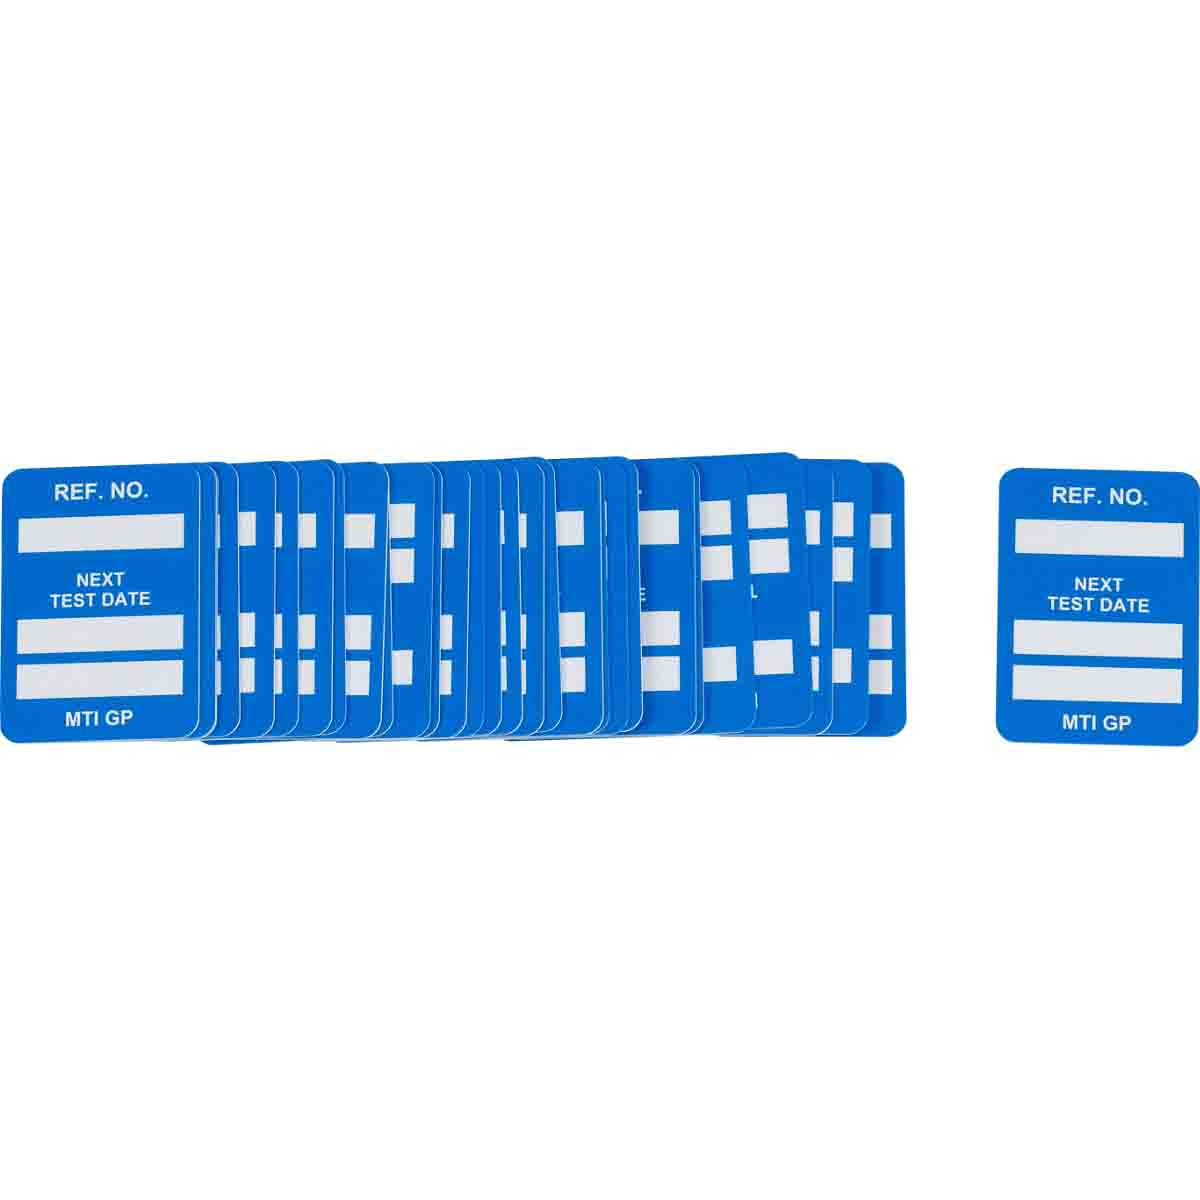 Brady® 104144 Rectangle Insert Tag, 1-1/4 in H x 1-1/4 in W, White on Blue, B-874 Plastic